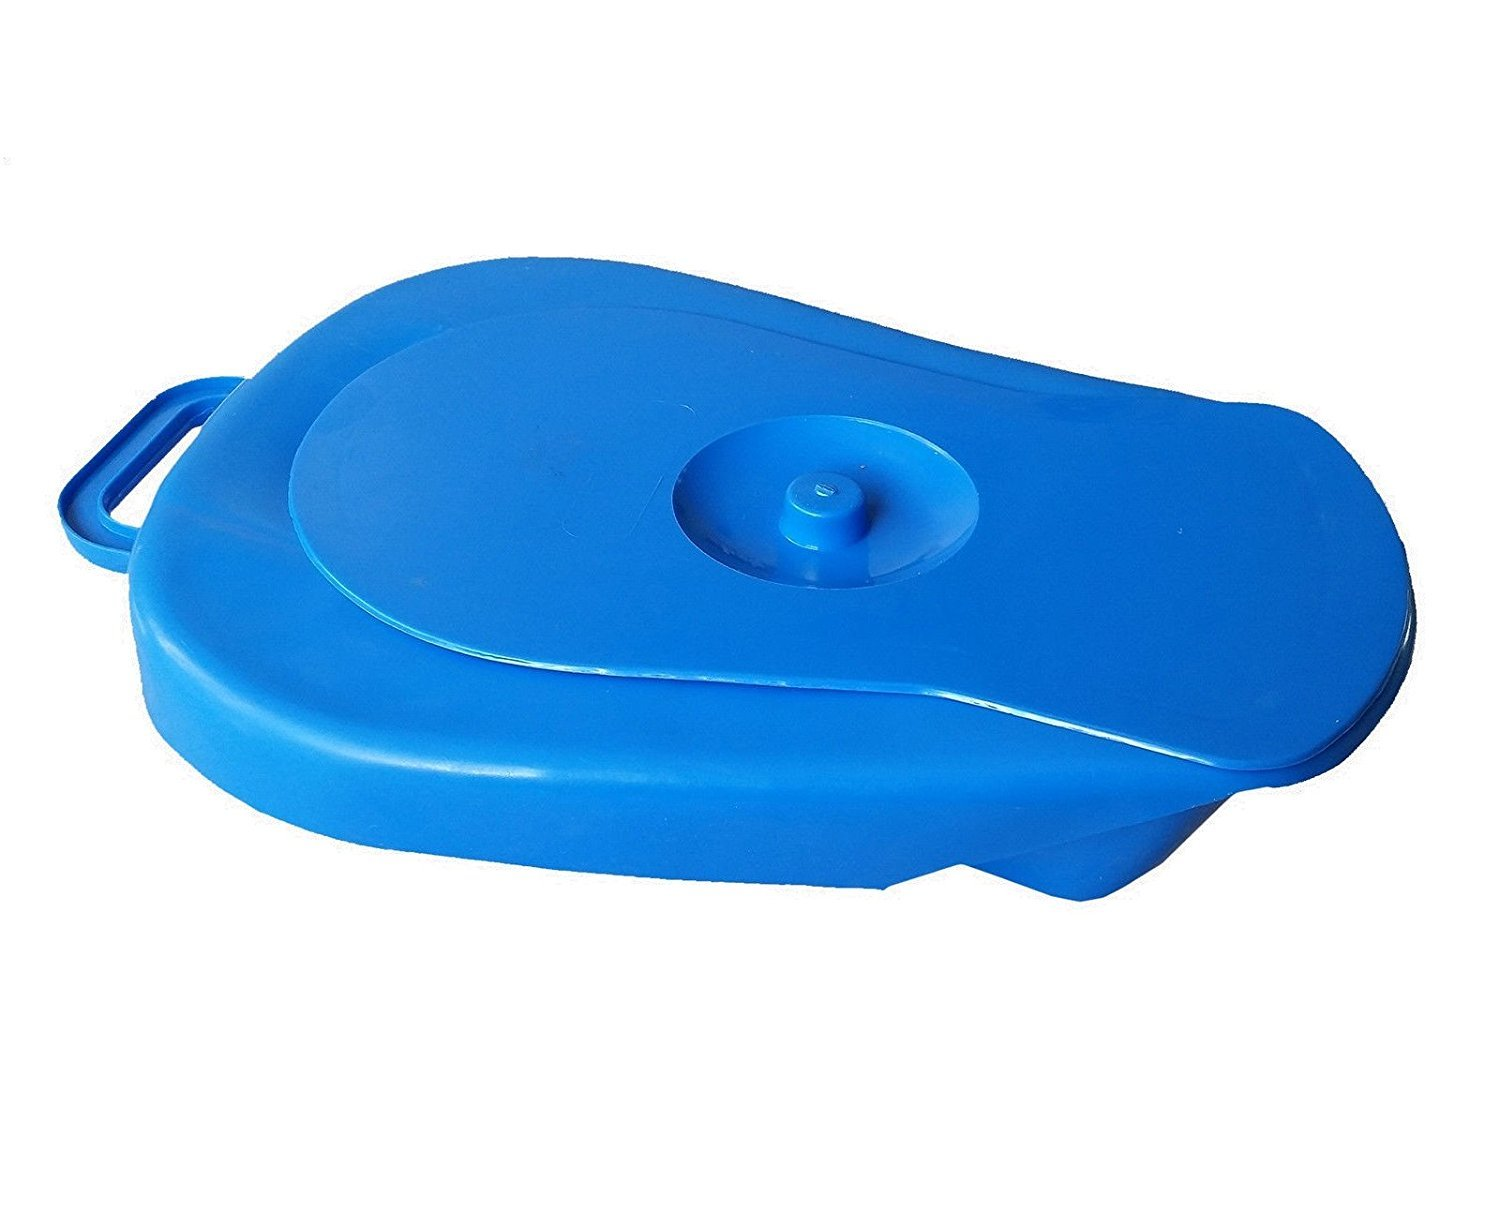 Polypropylene Duro-Med Deluxe Bedpan, Smooth Countoured Bariatric Bedpan, Autoclavable (Size: 39 * 26 * 9 Cm)